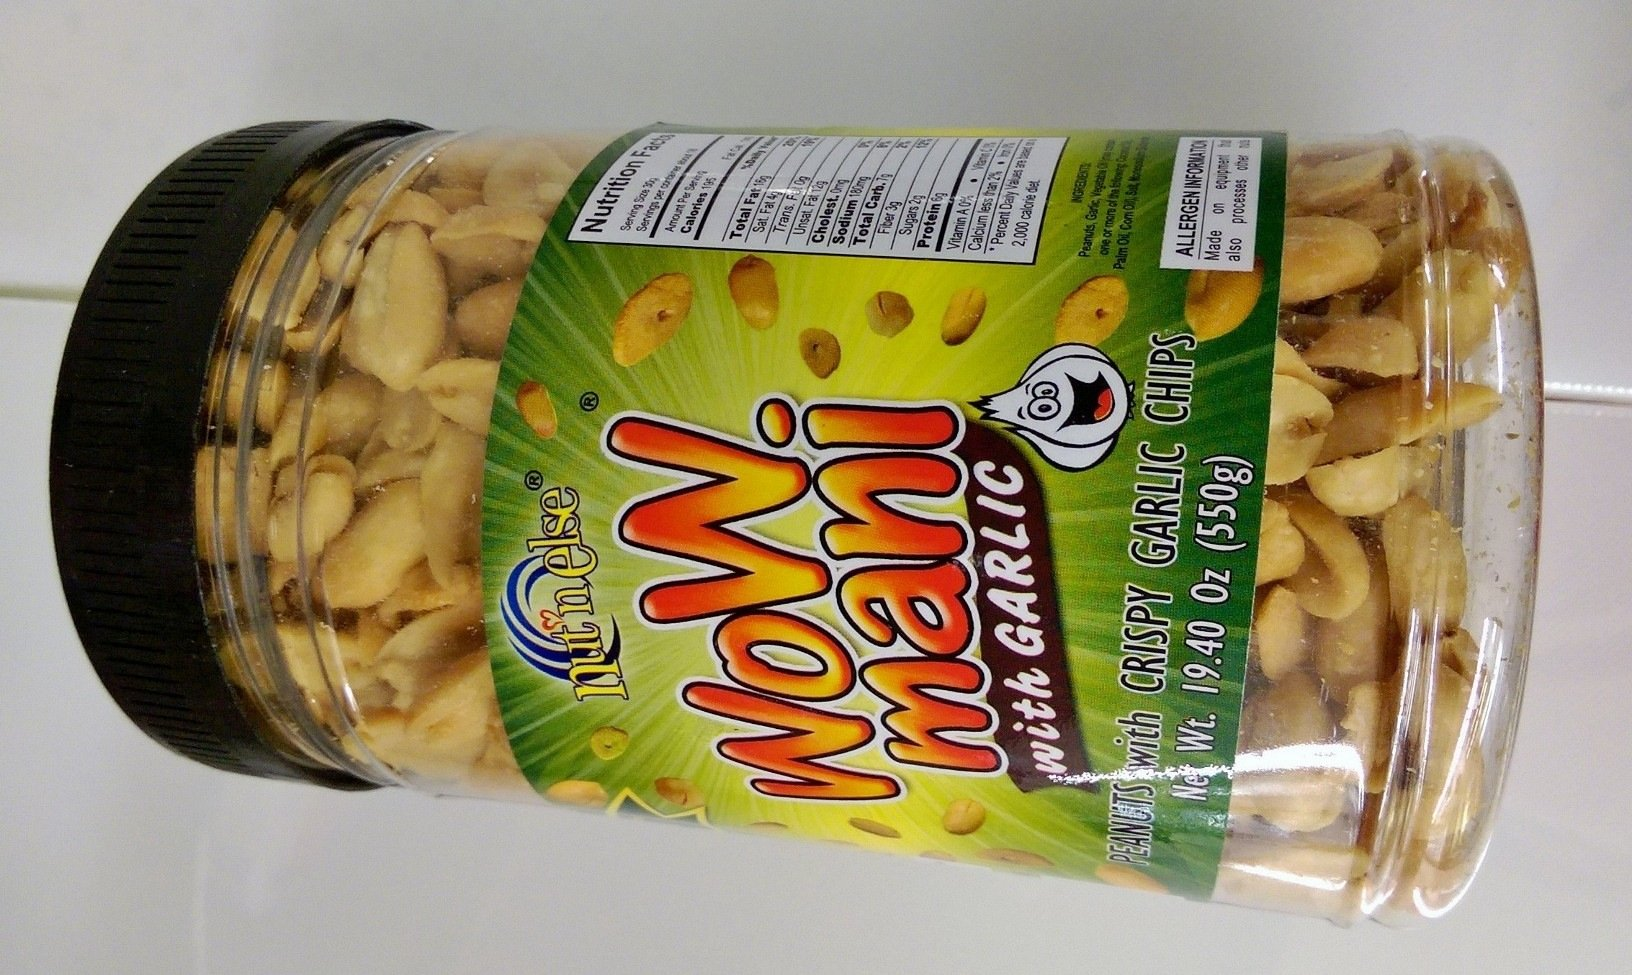 Wow Mani with Garlic Peanuts Pack of Two 19.40 Oz a Pack